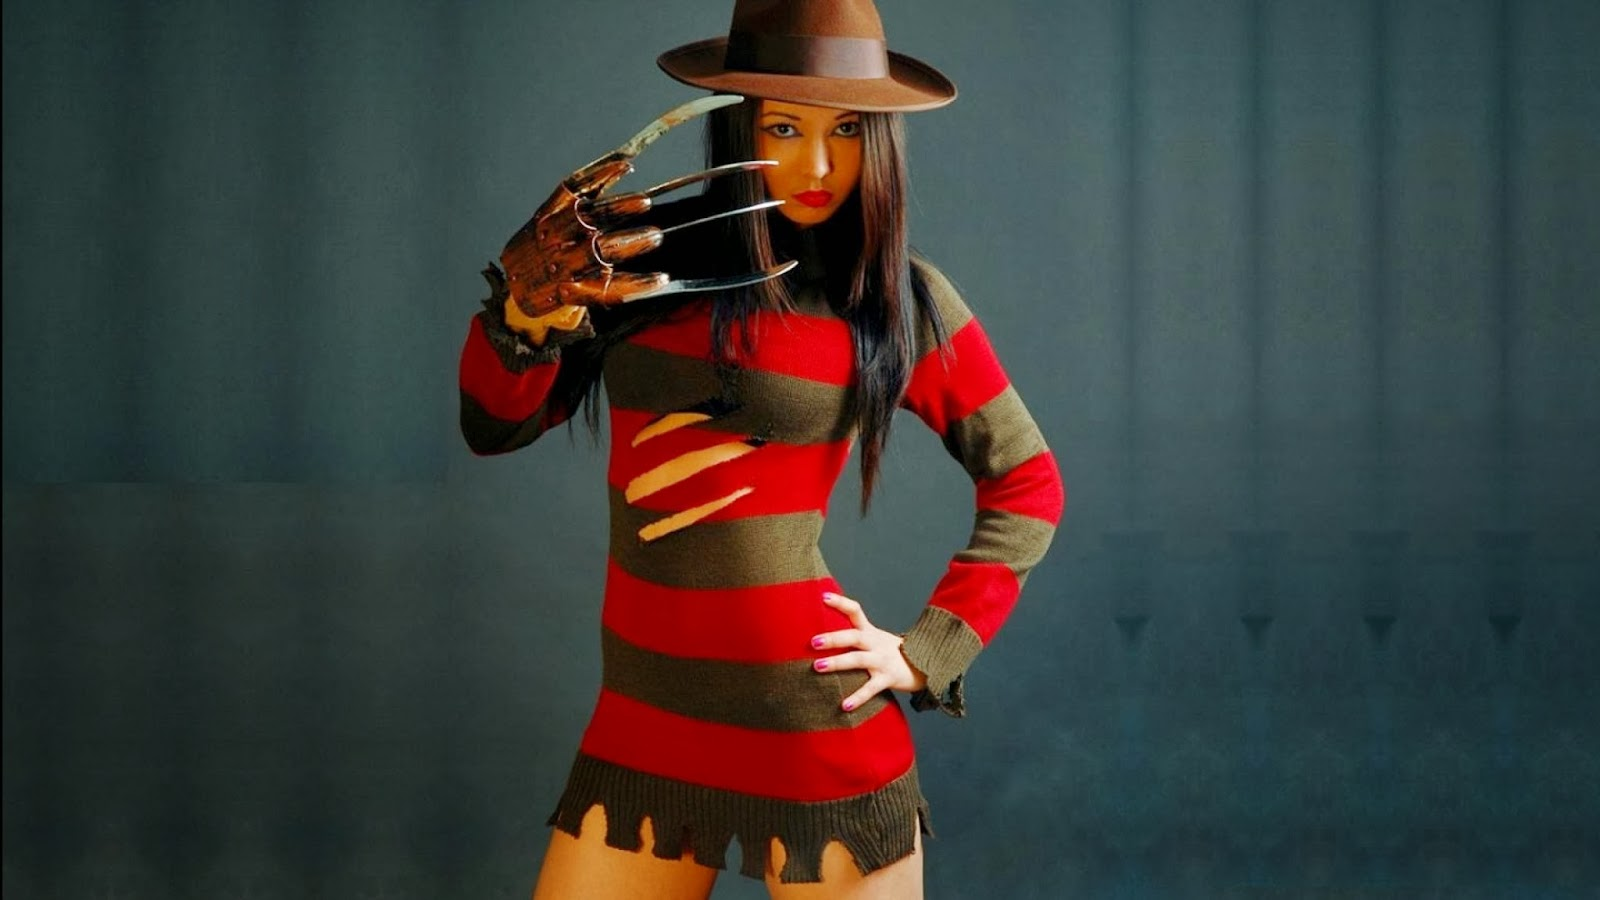 Freddy Krueger Wallpapers   HD Wallpapers Window Top Rated Wallpapers 1600x900